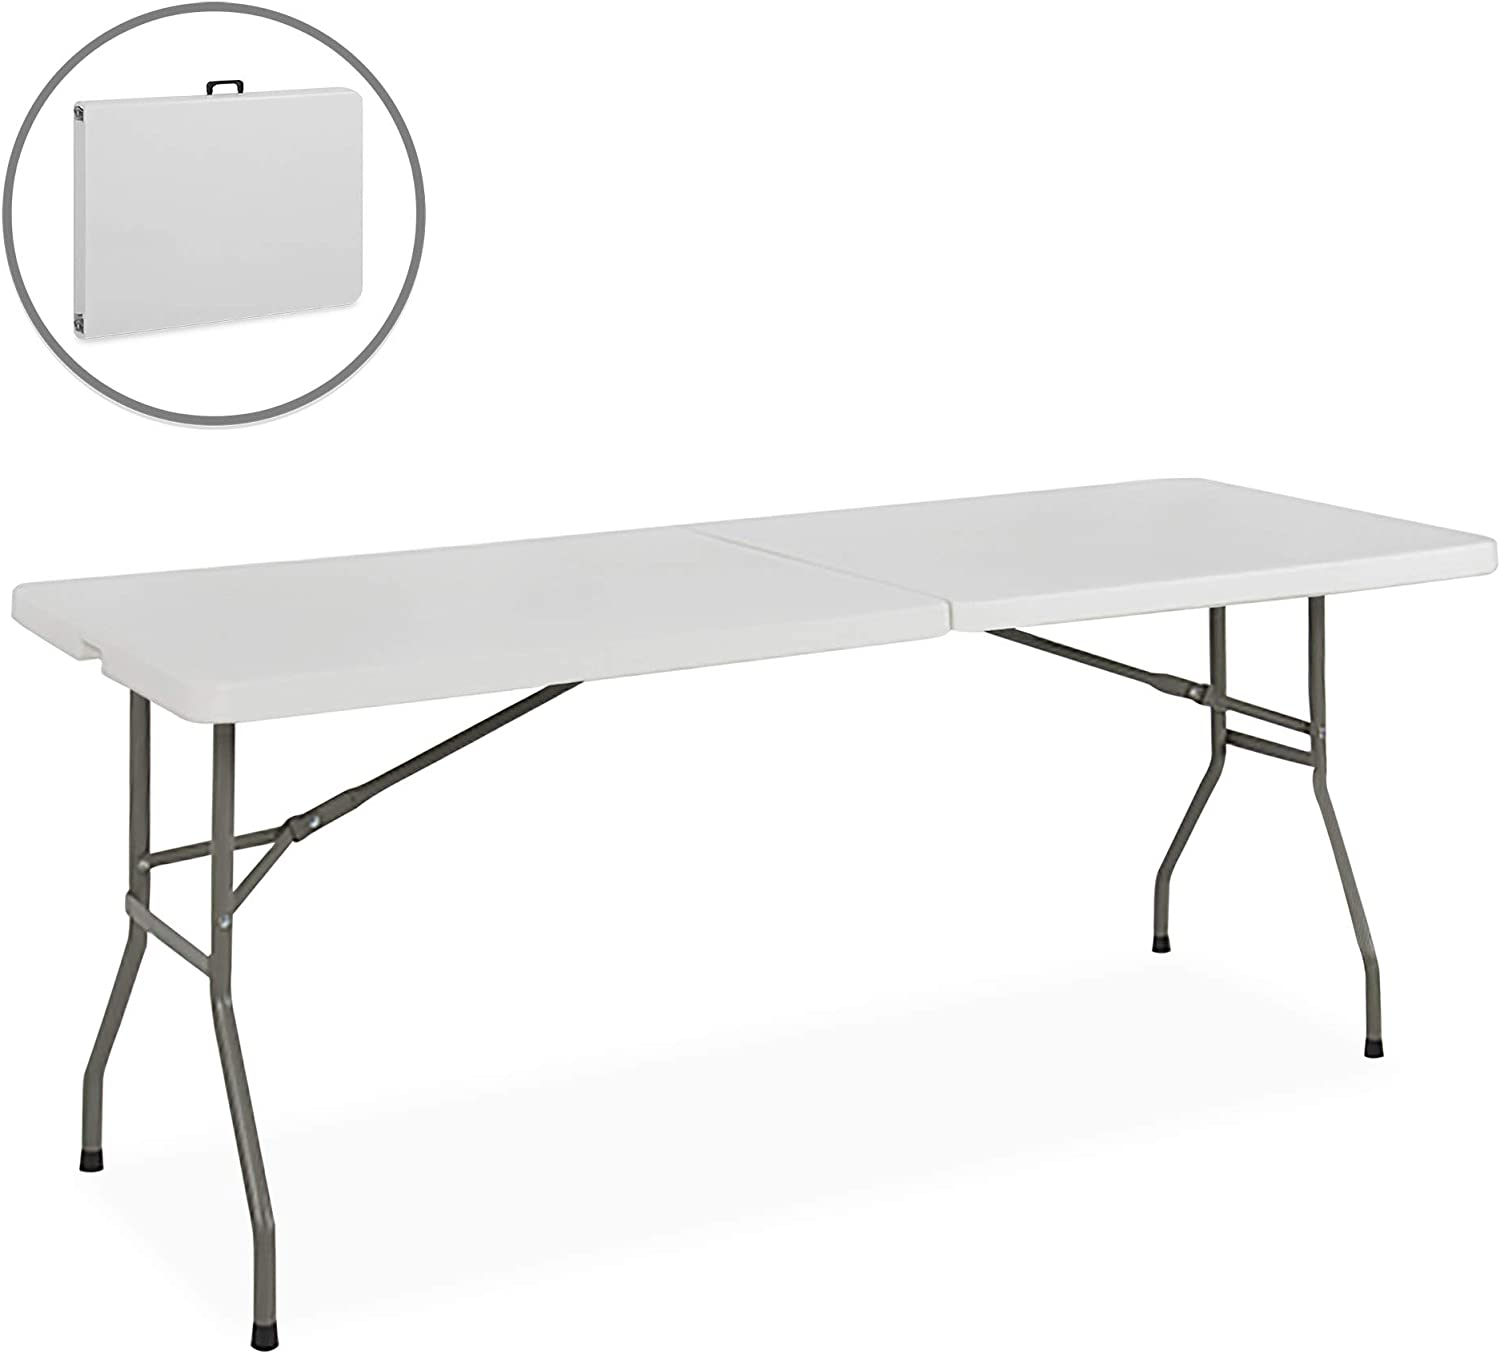 Best Choice Products Portable 6 Foot Folding Utility Table - White